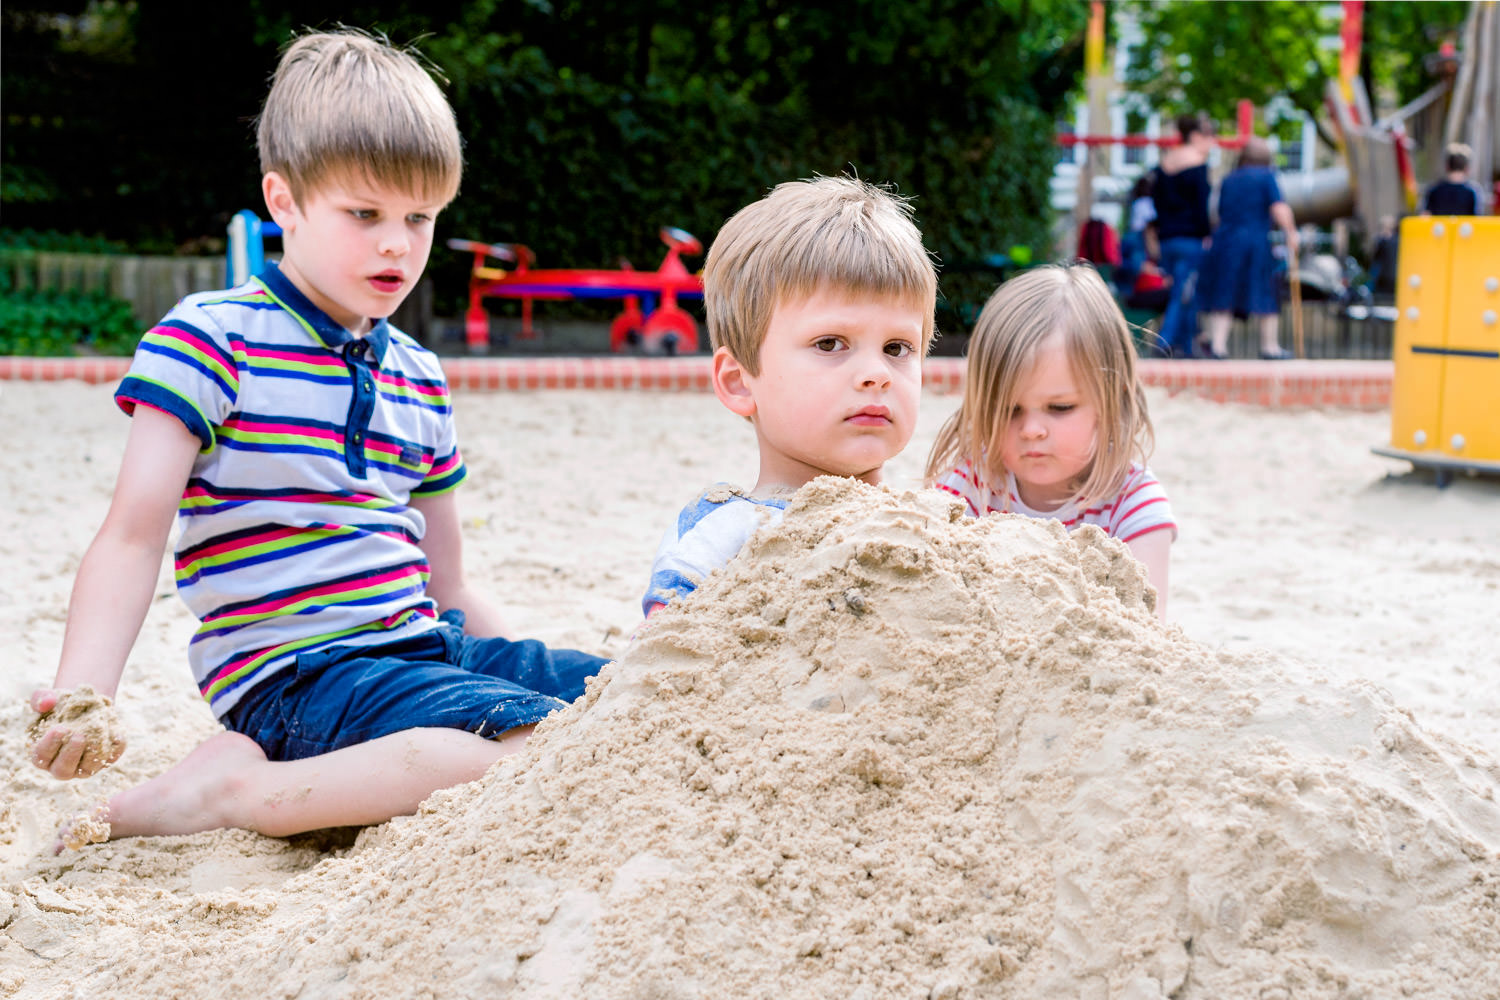 unhappy boy buried in sand by brother and sister